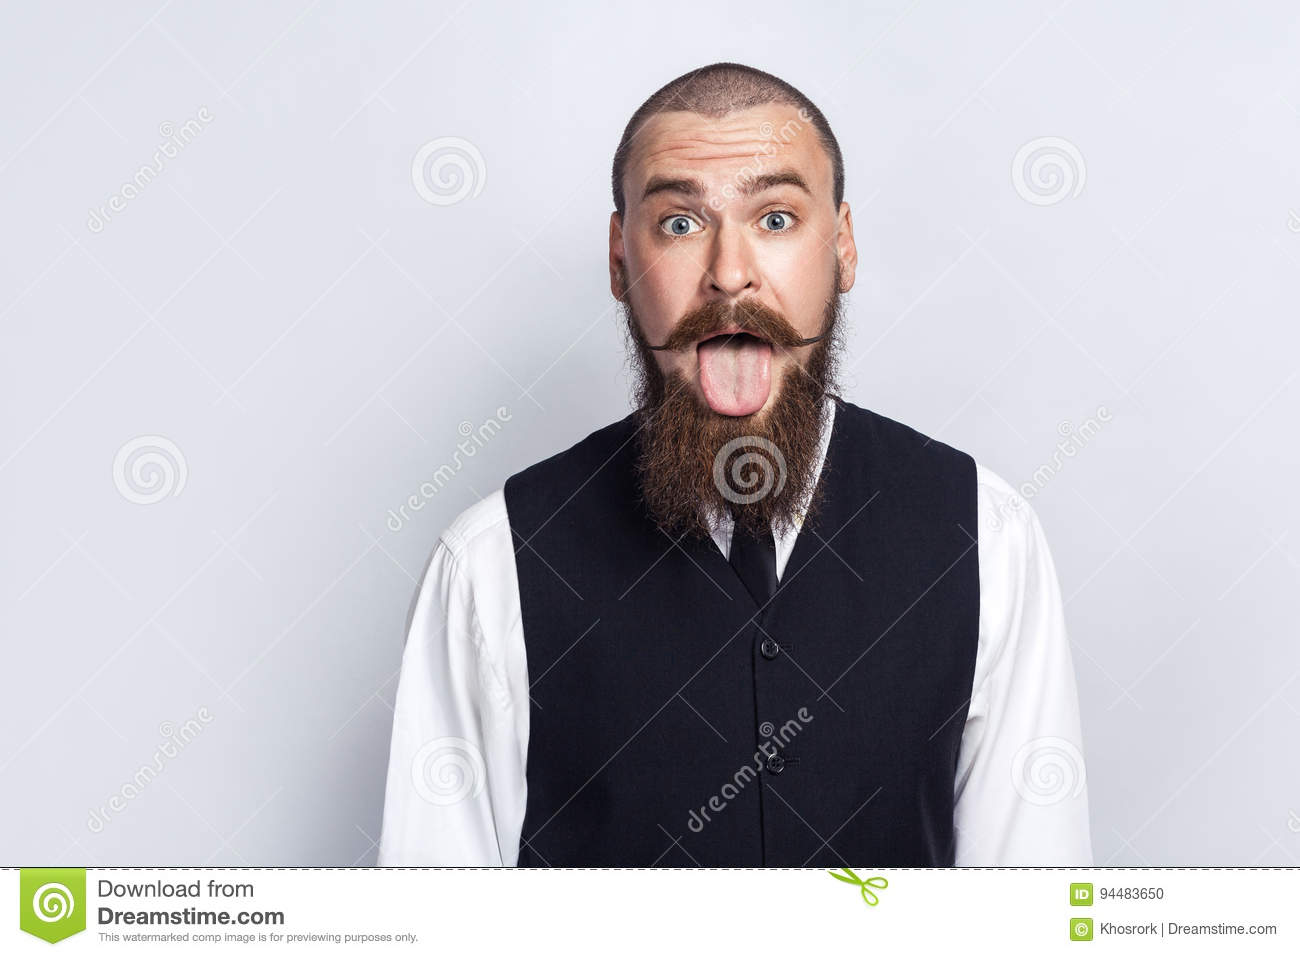 Crazy Funny face. Handsome businessman with beard and handlebar mustache looking at camera with tongue out.